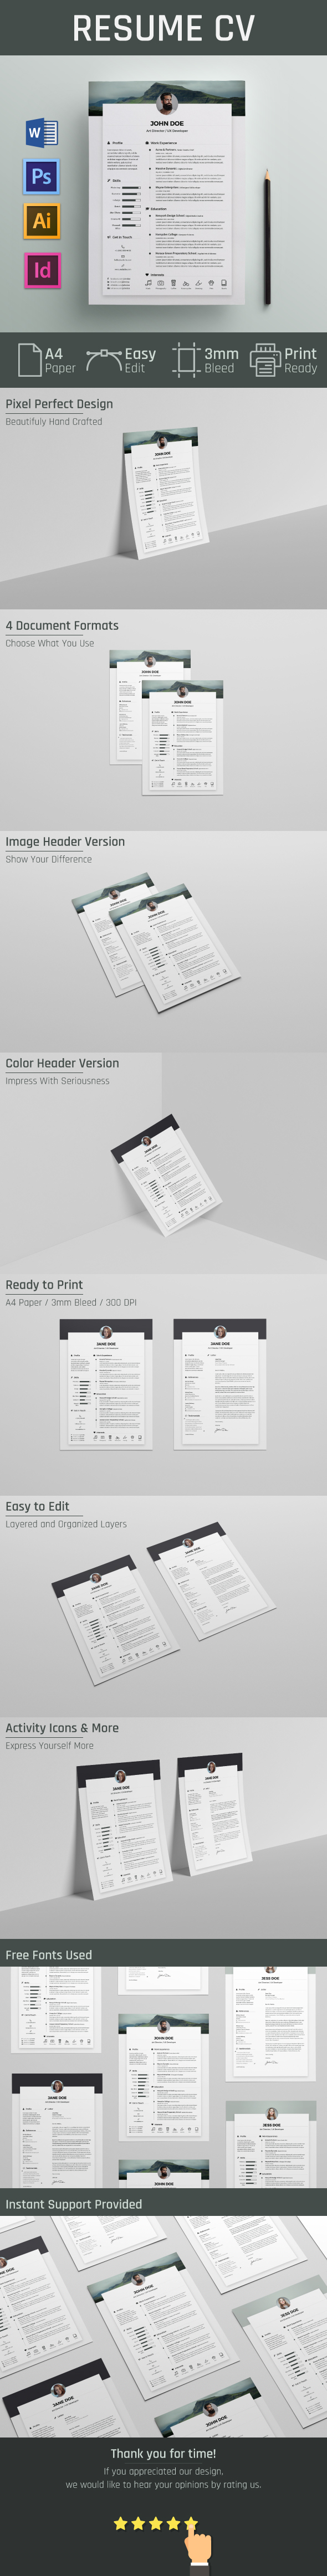 free resume    cv template on behance